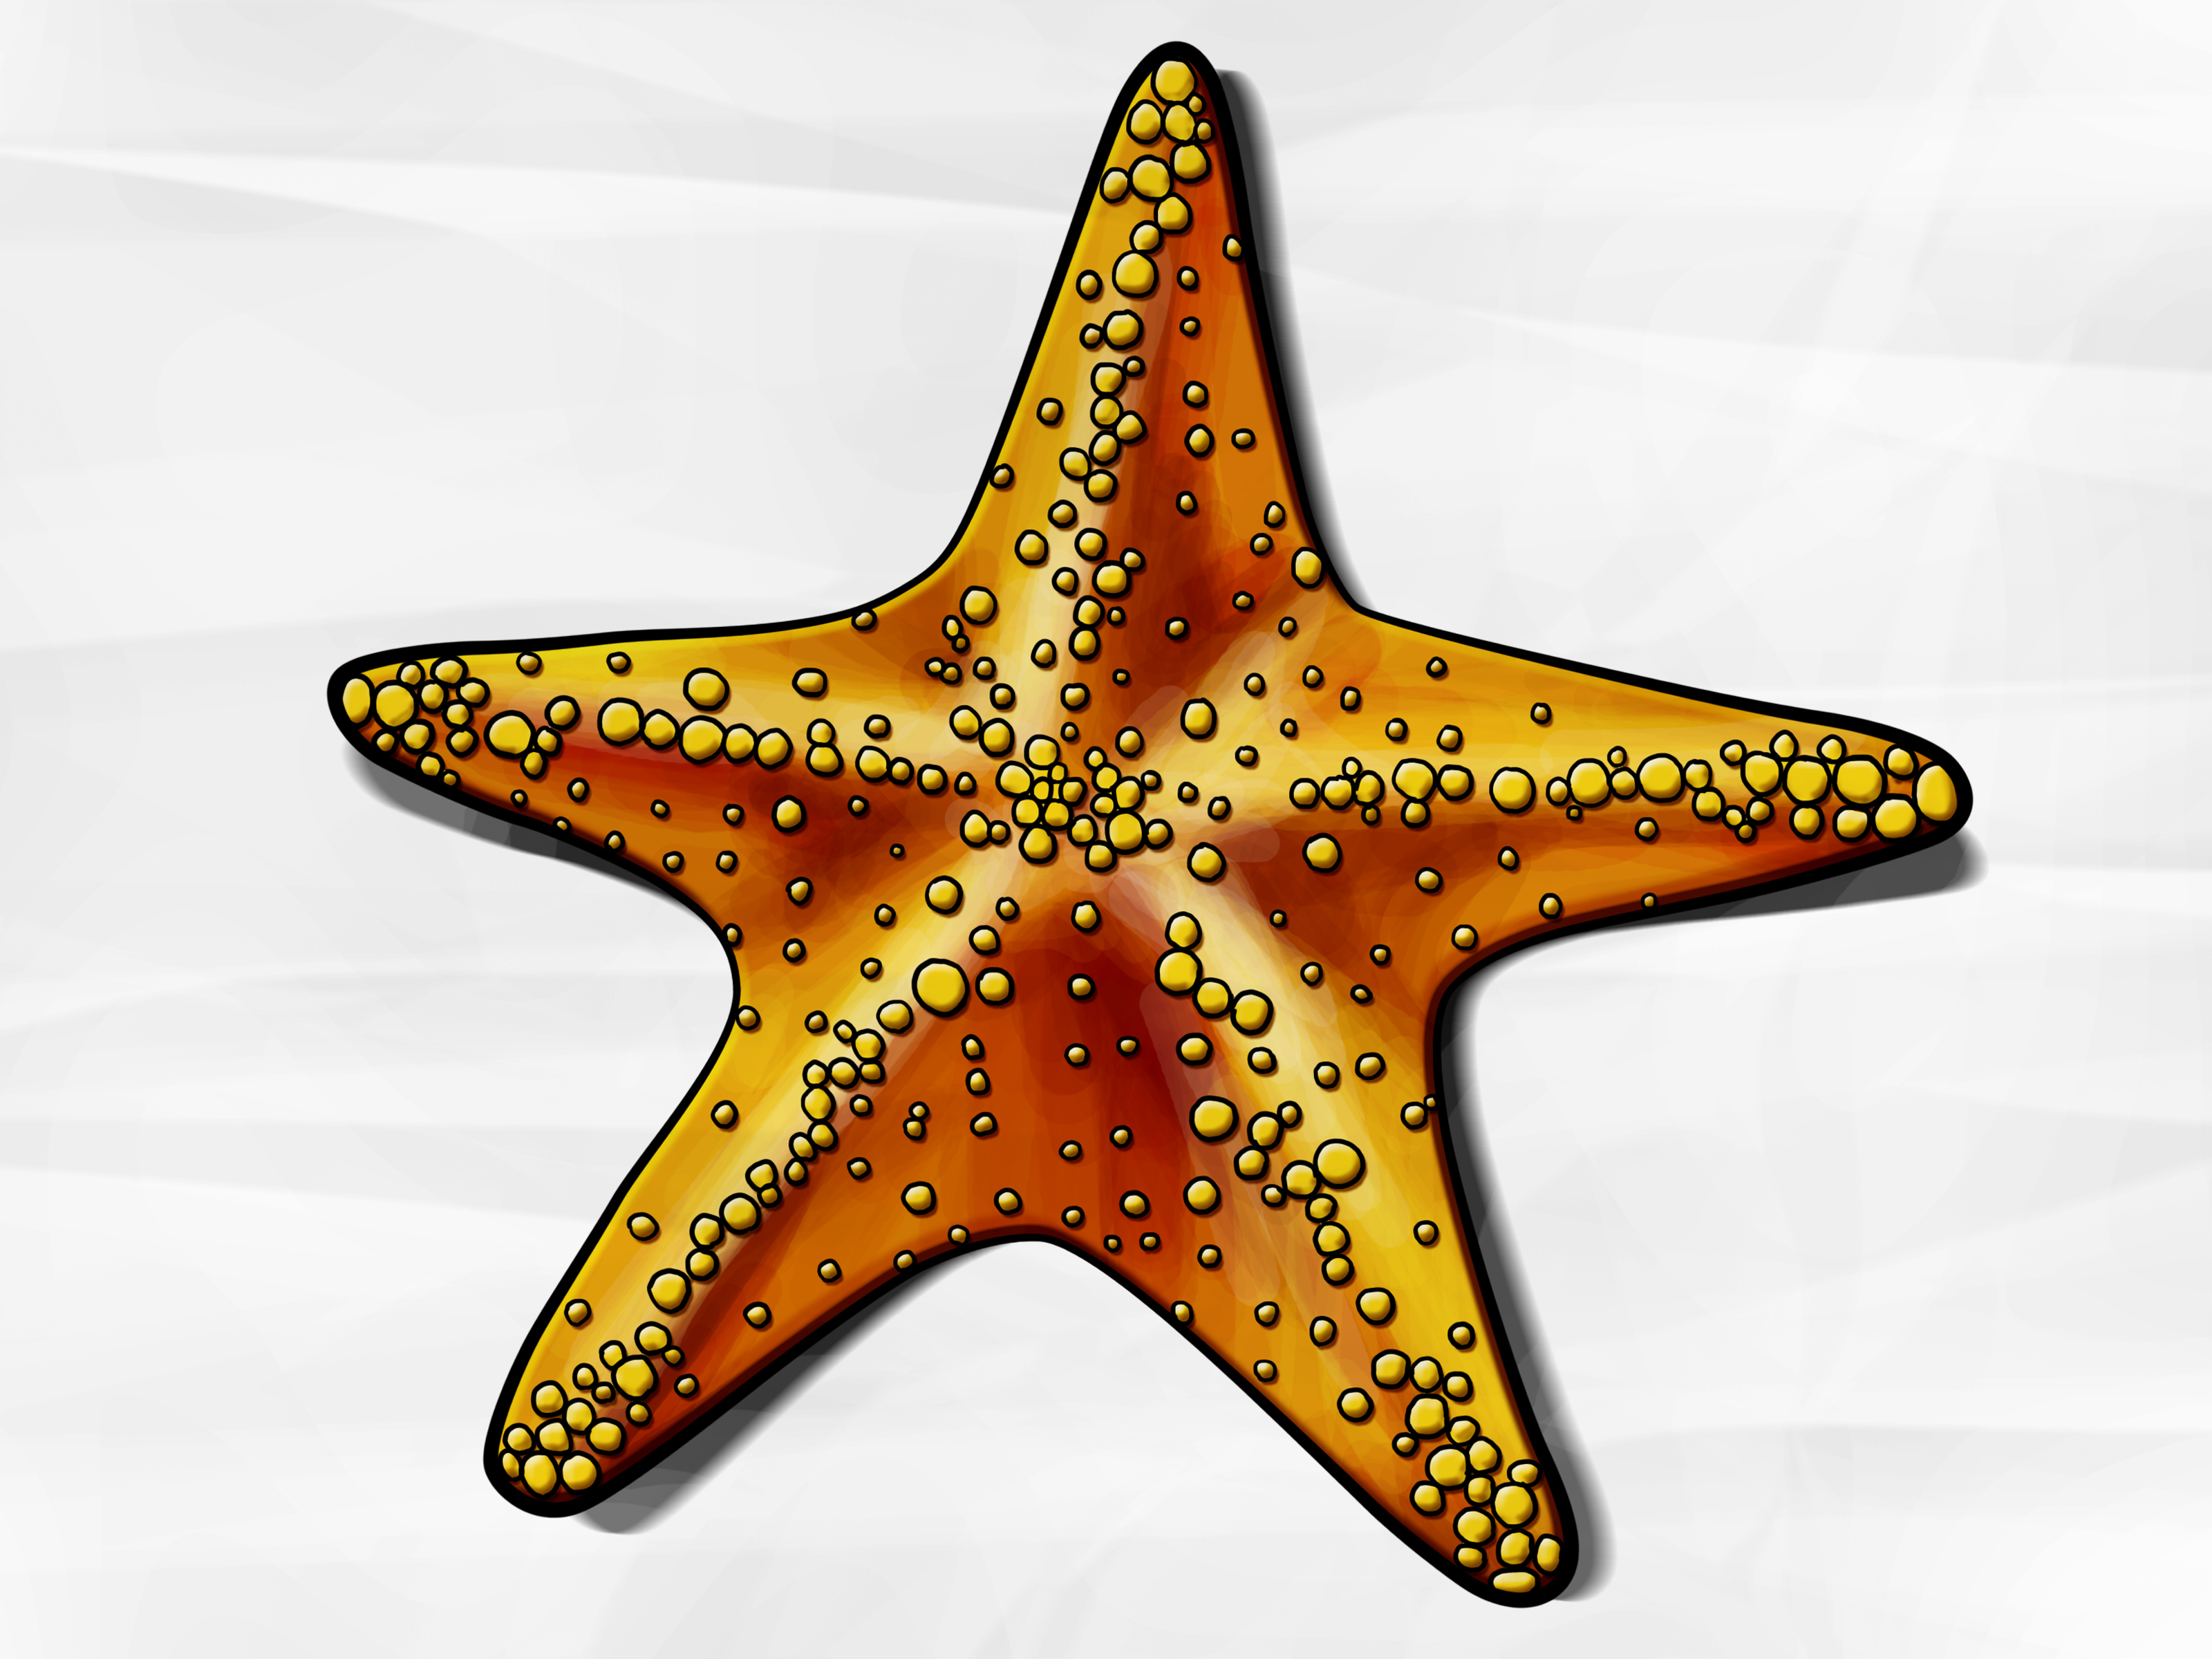 Pencil starfish clipart royalty free download How to Draw a Starfish: 6 Steps (with Pictures) - wikiHow royalty free download